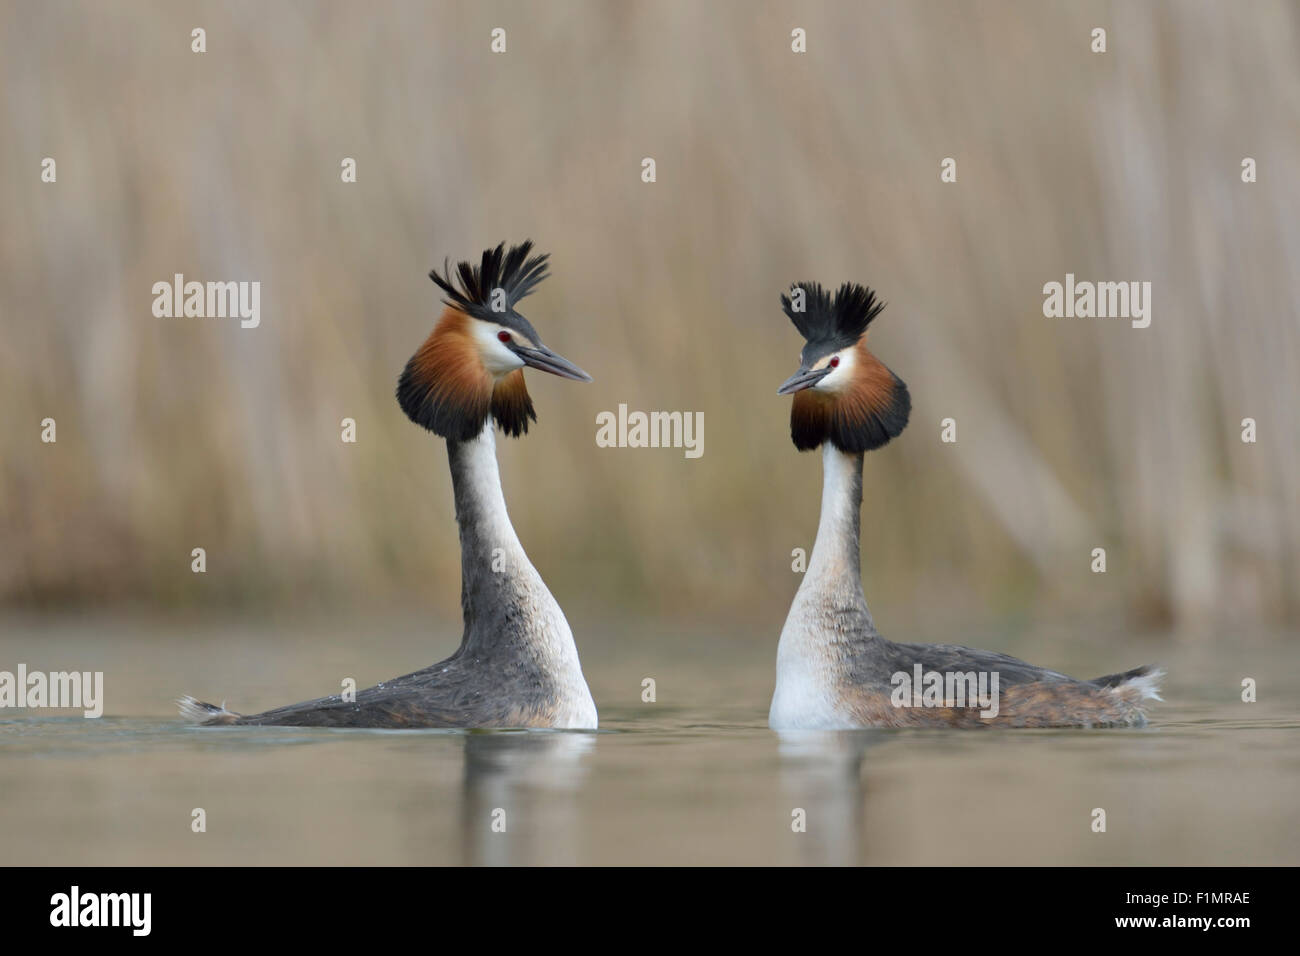 A pair of Great Crested Grebe / Grebes / Great Cresties / Haubentaucher ( Podiceps cristatus ) in courtship mood. - Stock Image